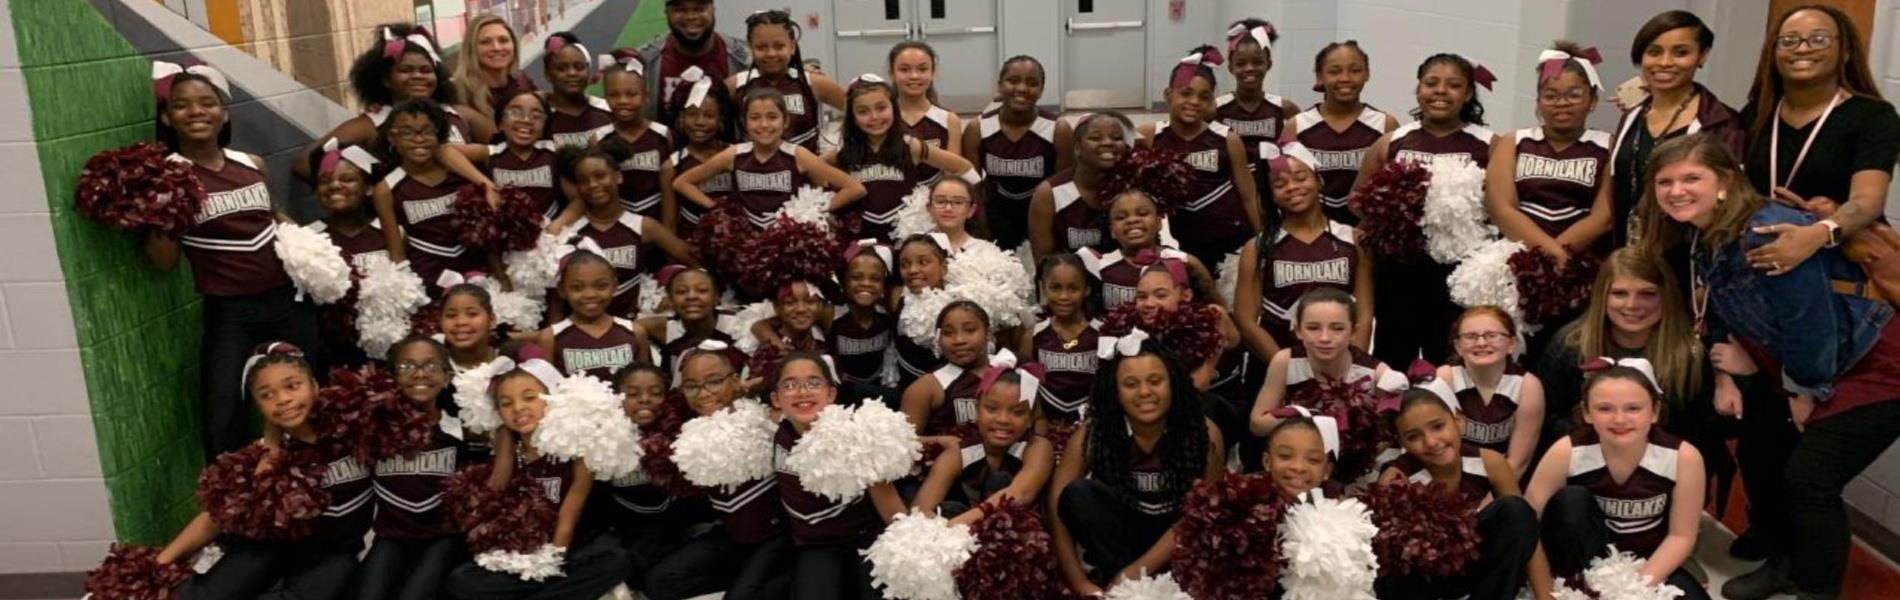 HLIS Cheer and Dance